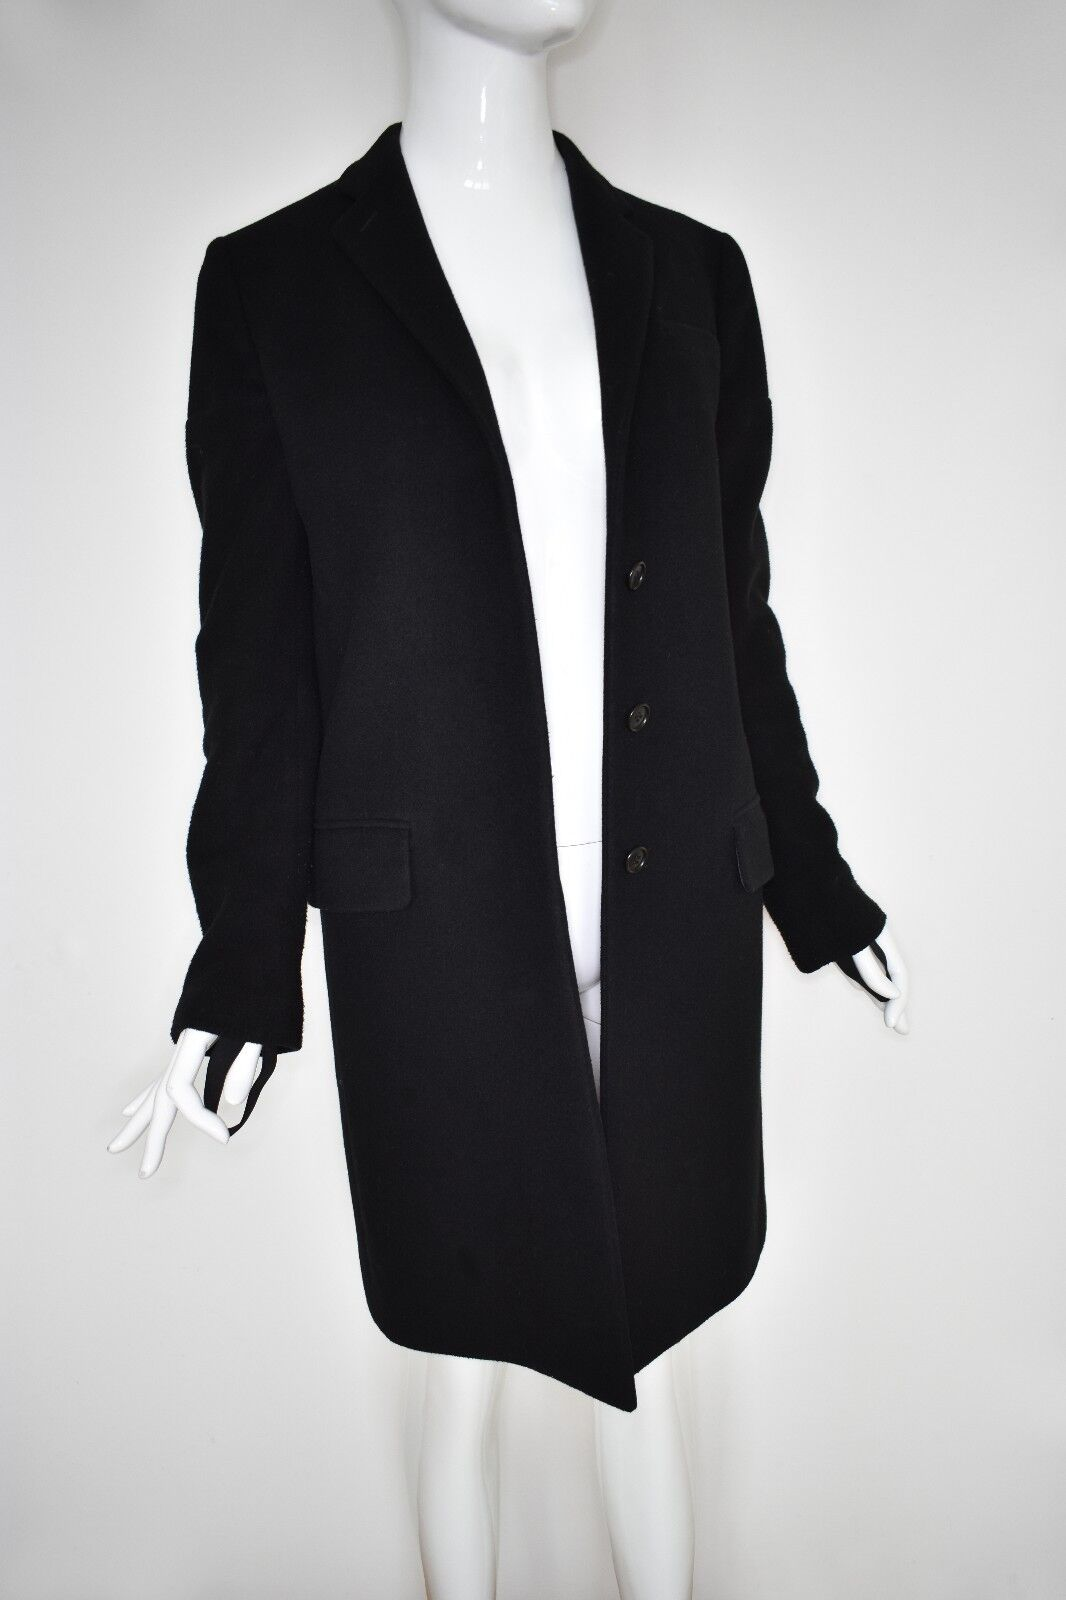 HELMUT LANG coat navy Blau Größe 42 IT 38 details on sleeves WOW made in italy vi